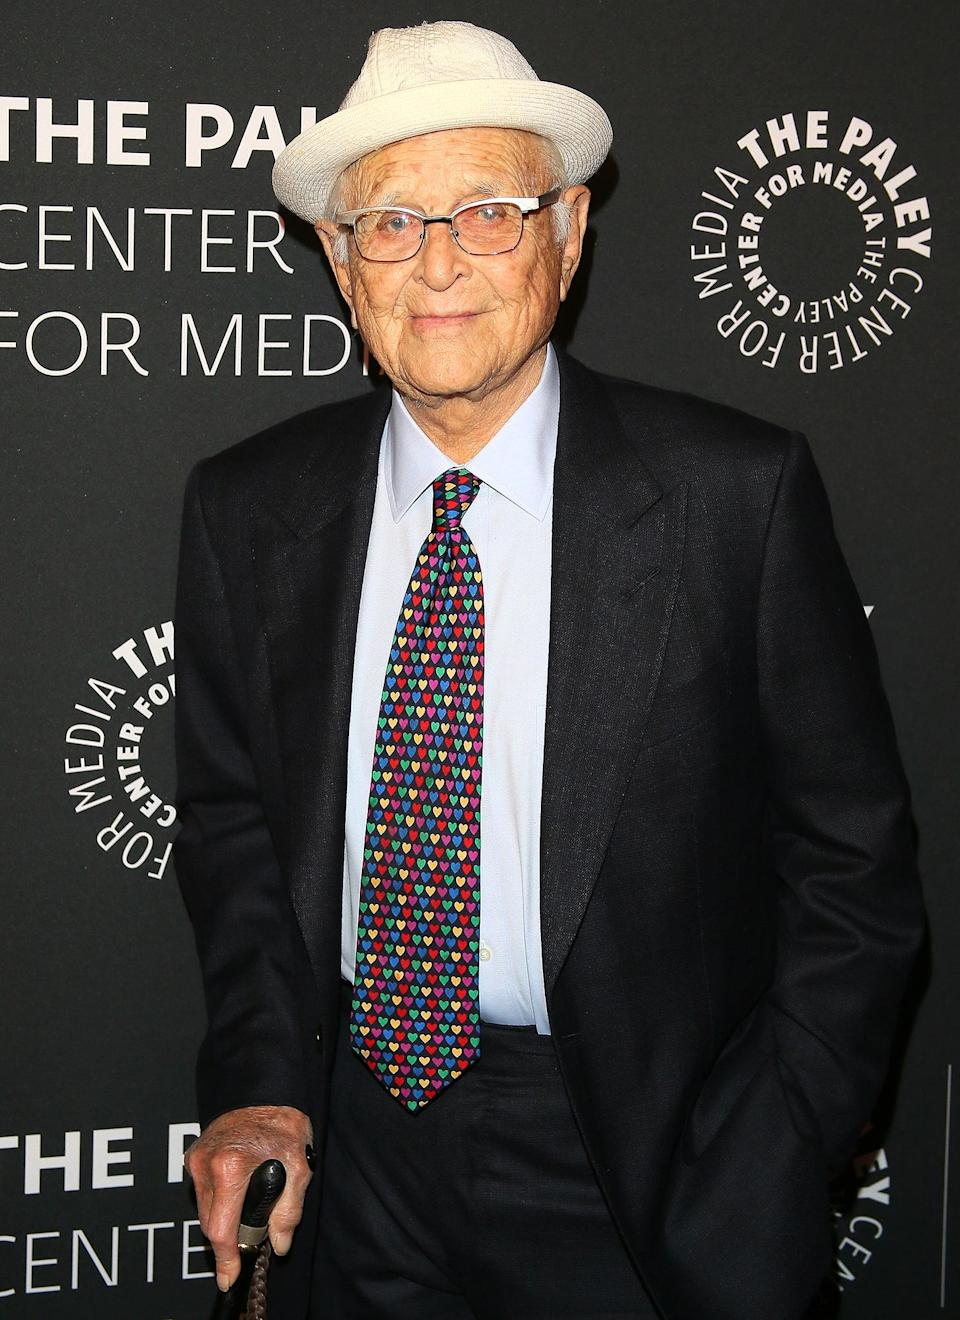 """<p>Outside of Hollywood, Lear has kept busy by founding other non-profits including the now-defunct Business Enterprise Trust — which aimed to spotlight """"exemplary social innovations in American business,"""" <a href=""""http://www.normanlear.com/backstory/"""" rel=""""nofollow noopener"""" target=""""_blank"""" data-ylk=""""slk:according to its website"""" class=""""link rapid-noclick-resp"""">according to its website</a> — and the Norman Lear Center for research and public policy at the USC Annenberg School for Communication. He and wife Lyn, along with entertainment executive Alan Horn and his wife Cindy, also created the <a href=""""https://www.green4ema.org/"""" rel=""""nofollow noopener"""" target=""""_blank"""" data-ylk=""""slk:Environmental Media Association"""" class=""""link rapid-noclick-resp"""">Environmental Media Association</a> in 1989. </p> <p>Lear famously purchased an original copy of the Declaration of Independence in 2001, touring it around all 50 states for people to see in the 10 years he and Lyn owned it.</p> <p>He continues to host a podcast, <em>All of the Above with Norman Lear</em>, and released a book about his life,<em> Even This I Get to Experience</em>, in 2014.</p>"""